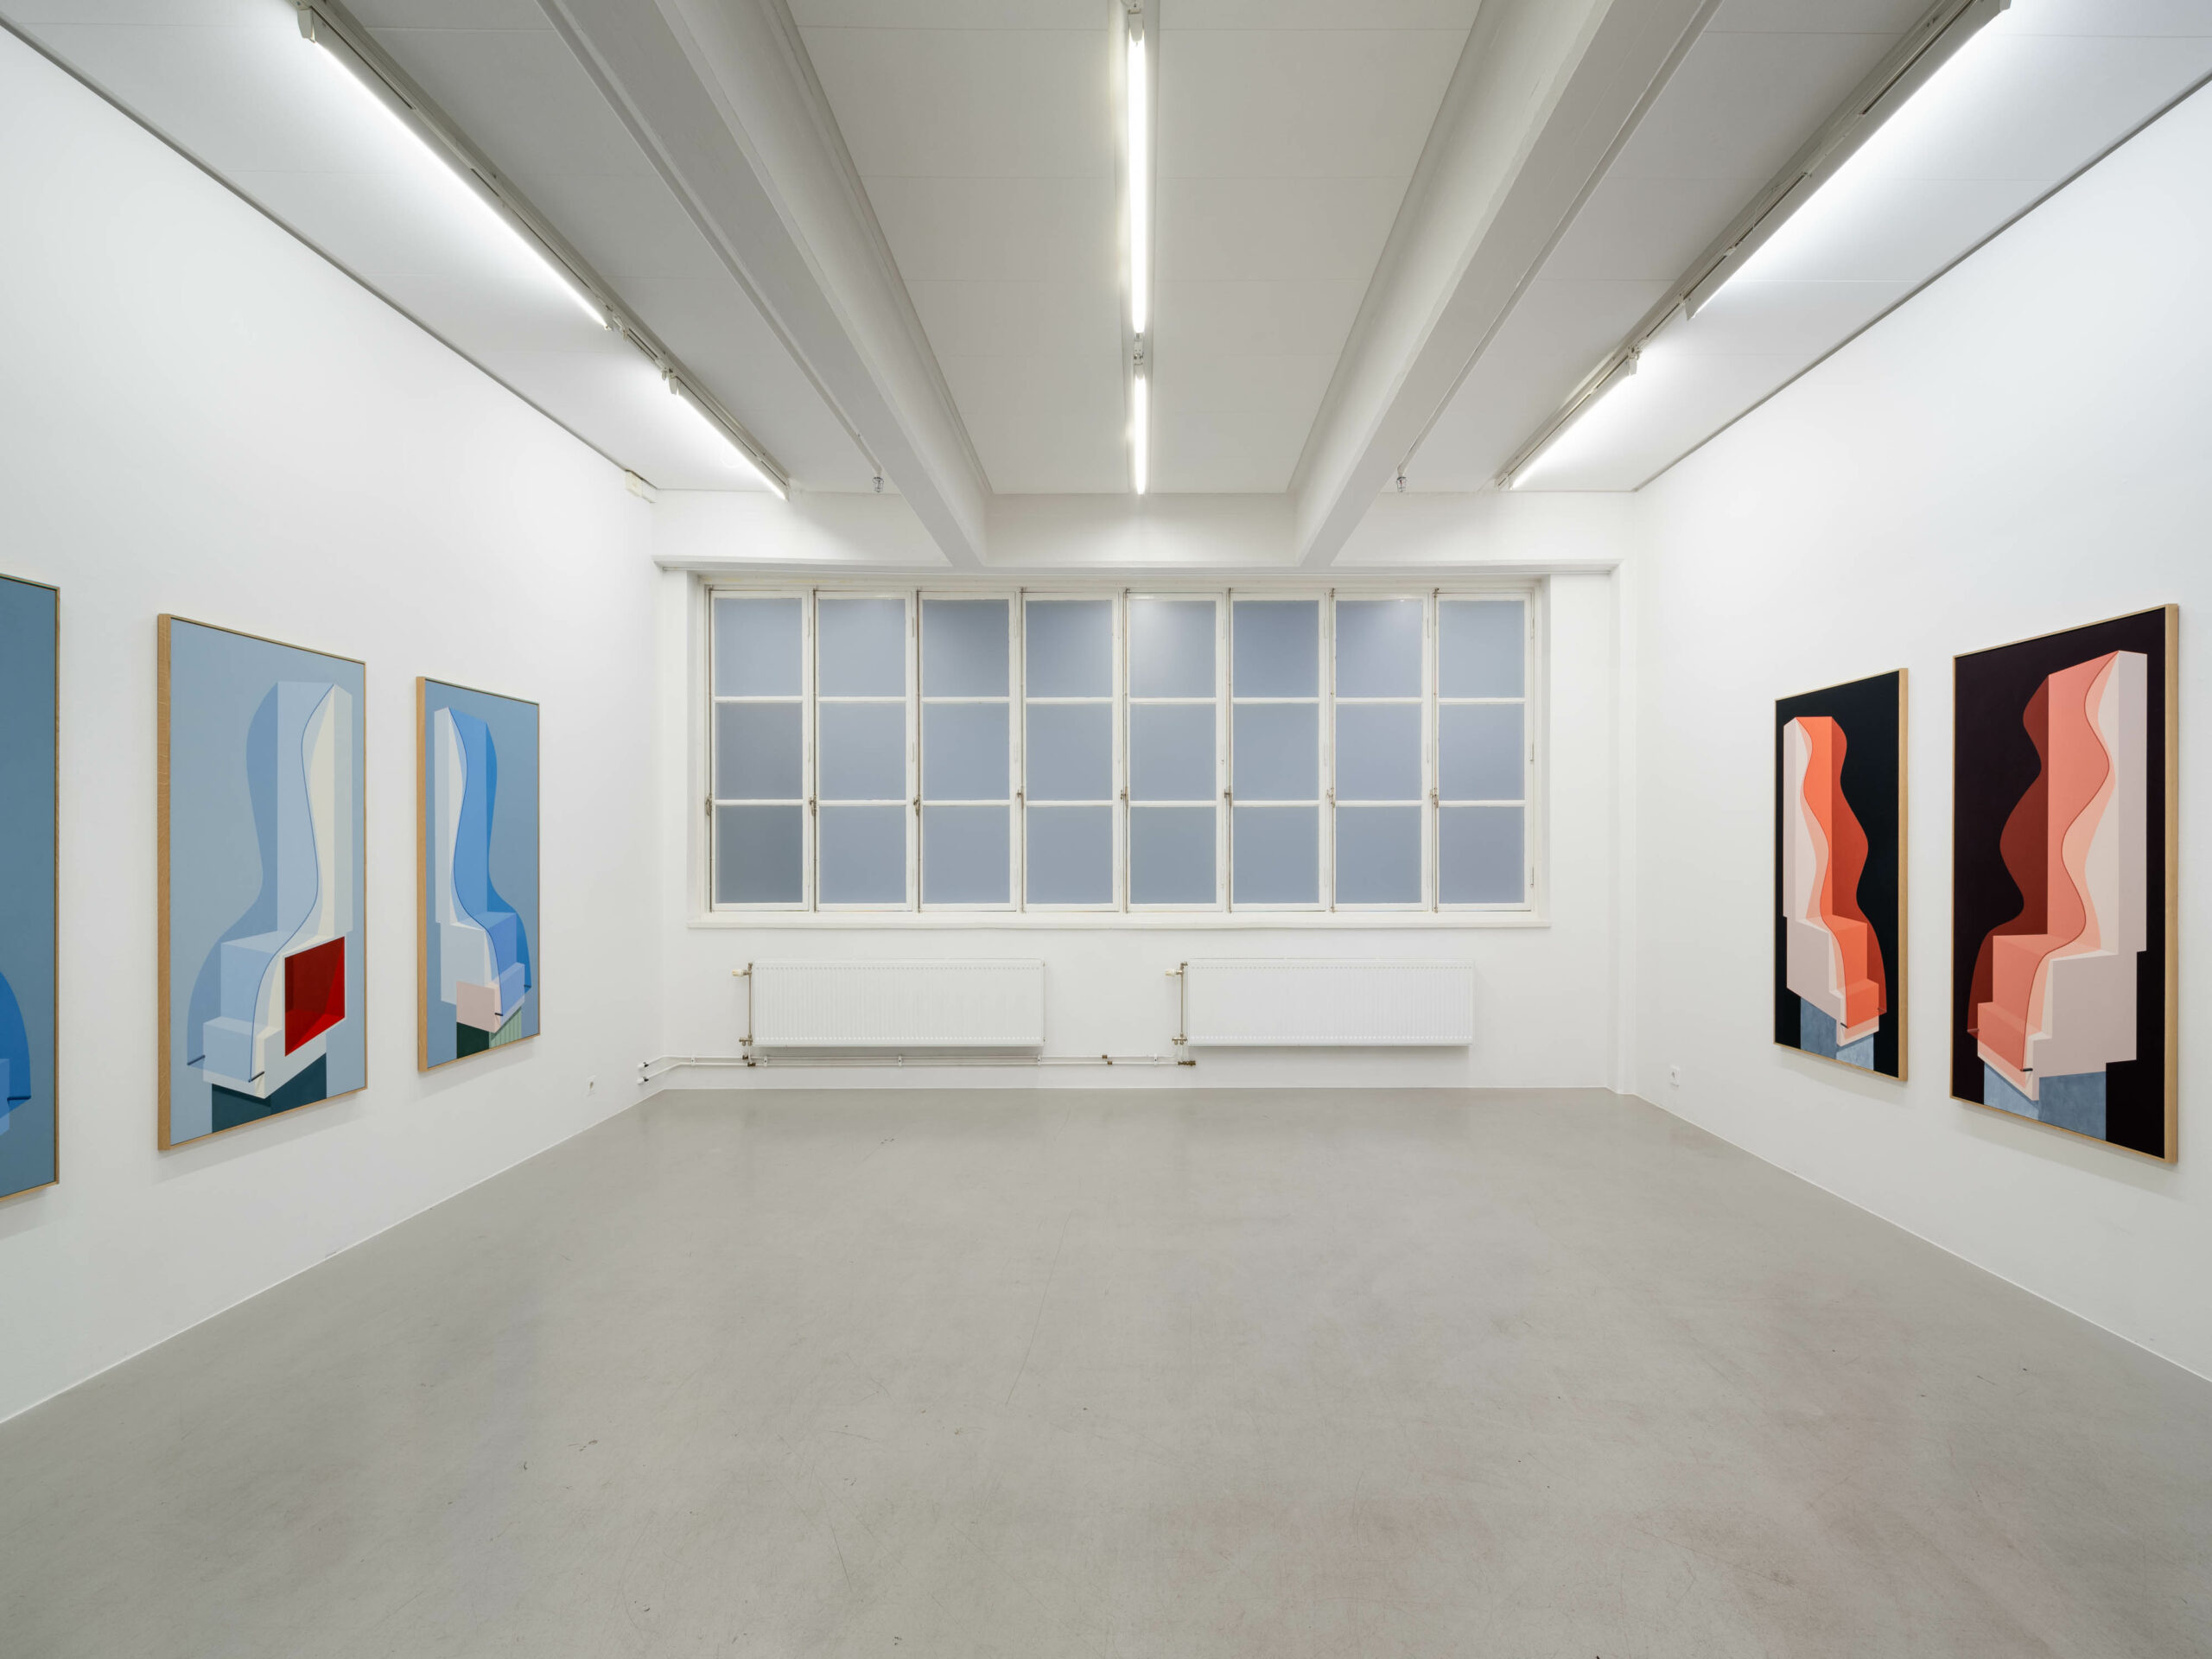 Installation view, Elin Odentia, The Waves, 2020, Cecilia Hillström Gallery. Photo: Jean-Baptiste Béranger